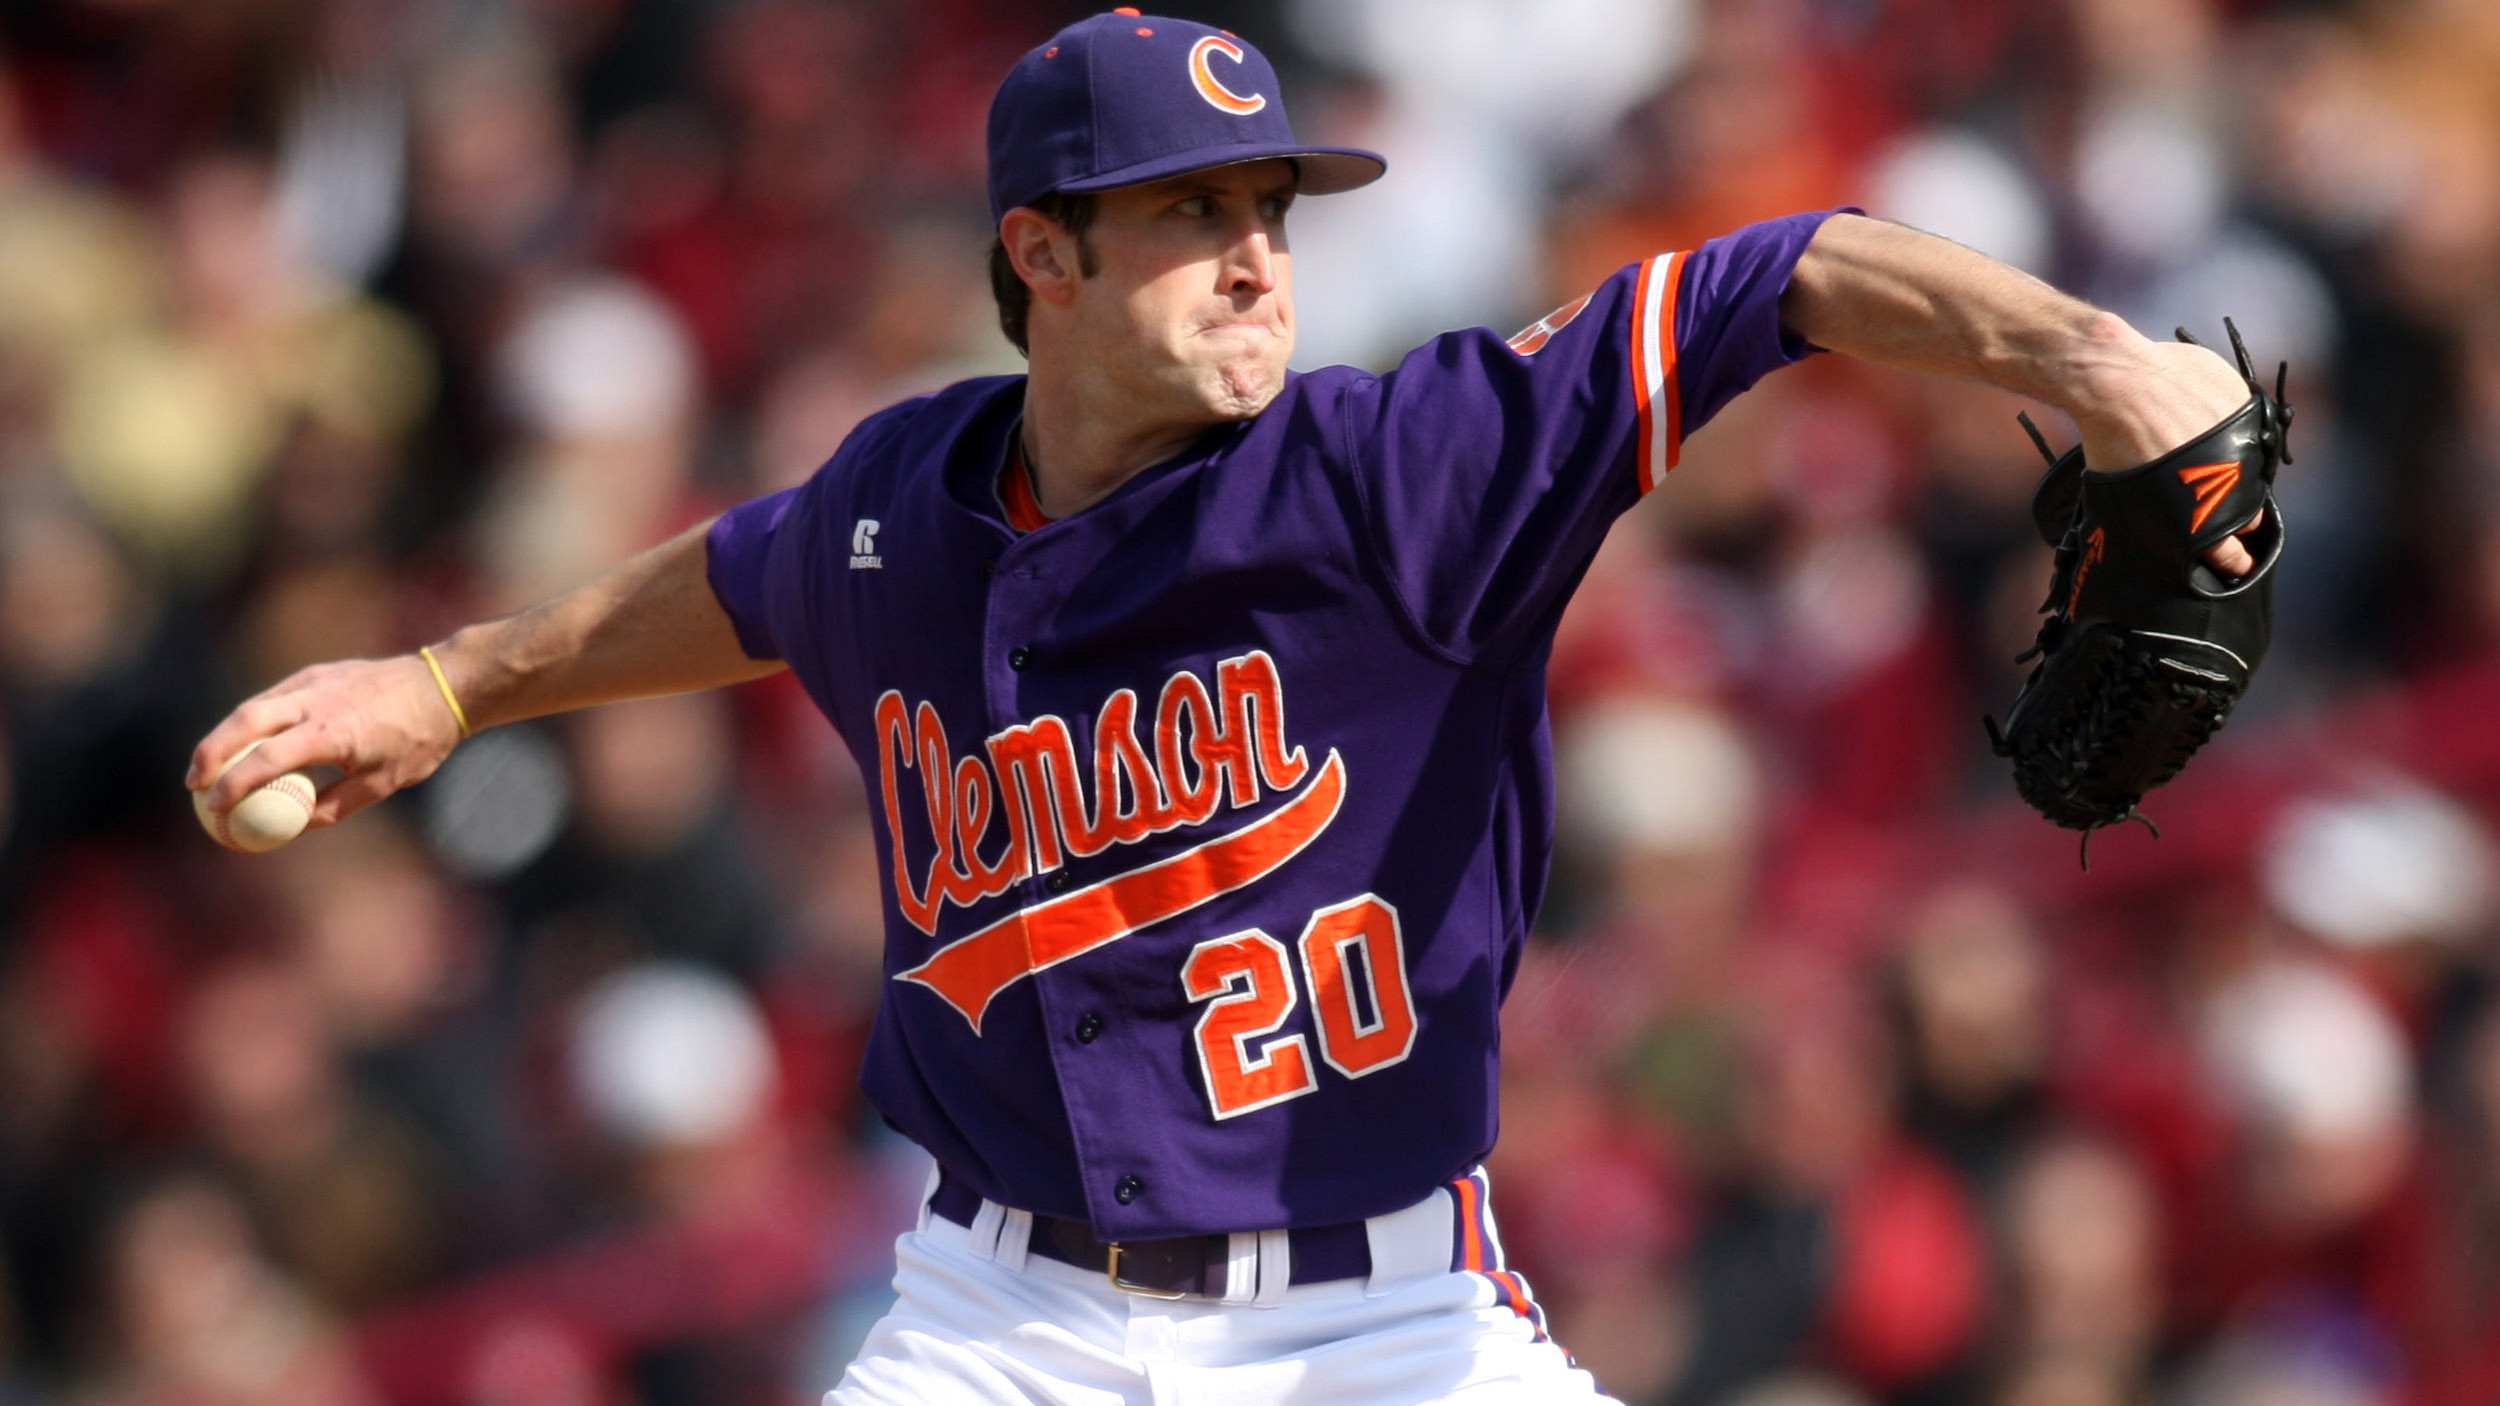 #15 Tigers Edge Maryland 3-2 in First Game of Doubleheader Monday